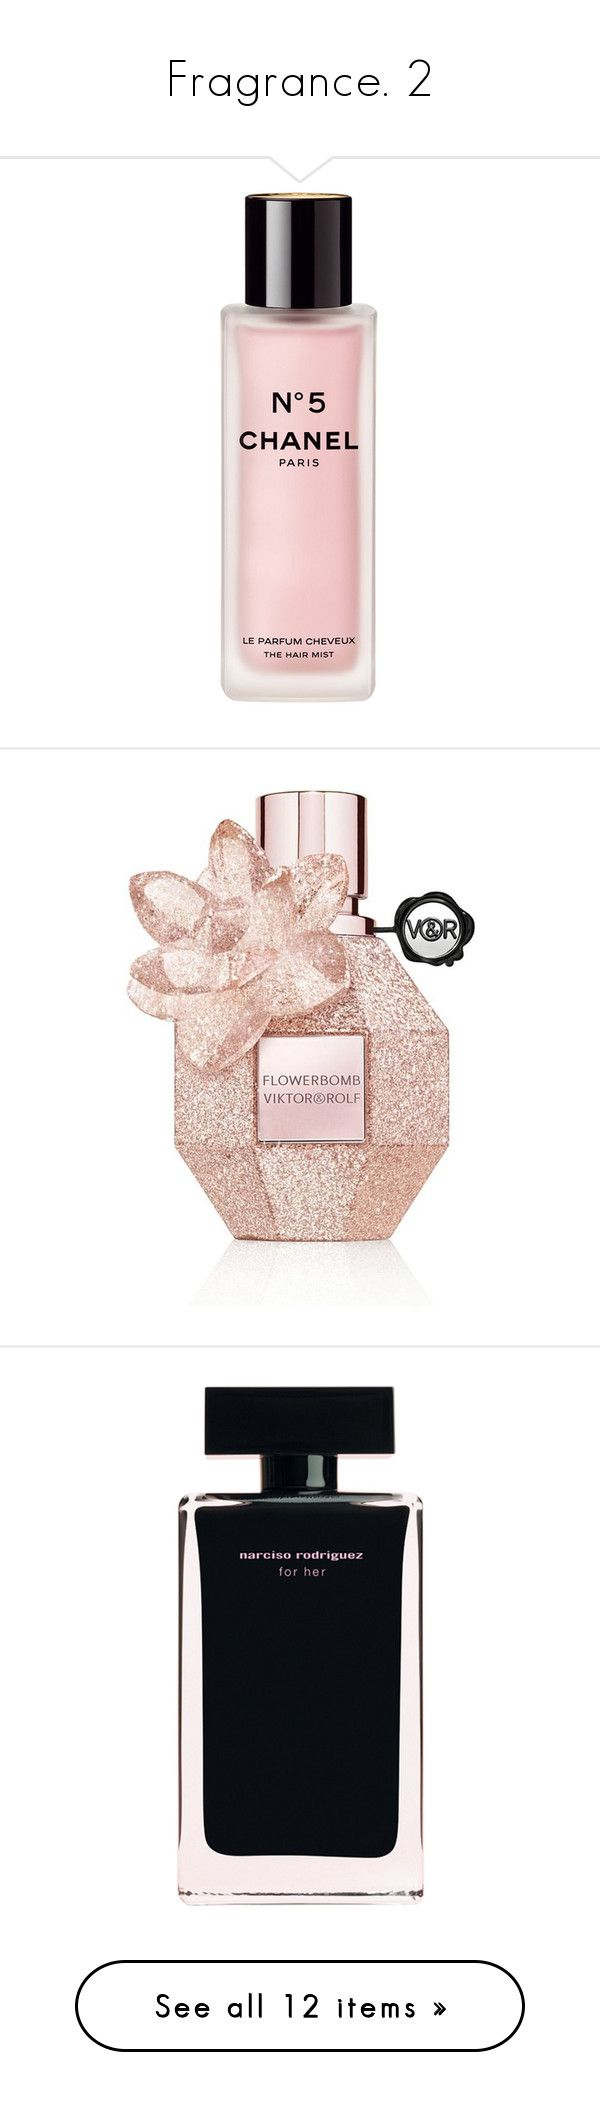 """""""Fragrance. 2"""" by falconry ❤ liked on Polyvore featuring beauty, perfume, makeup, accessories, cosmetics, fillers, decorations, beauty products, fragrance and black fillers"""